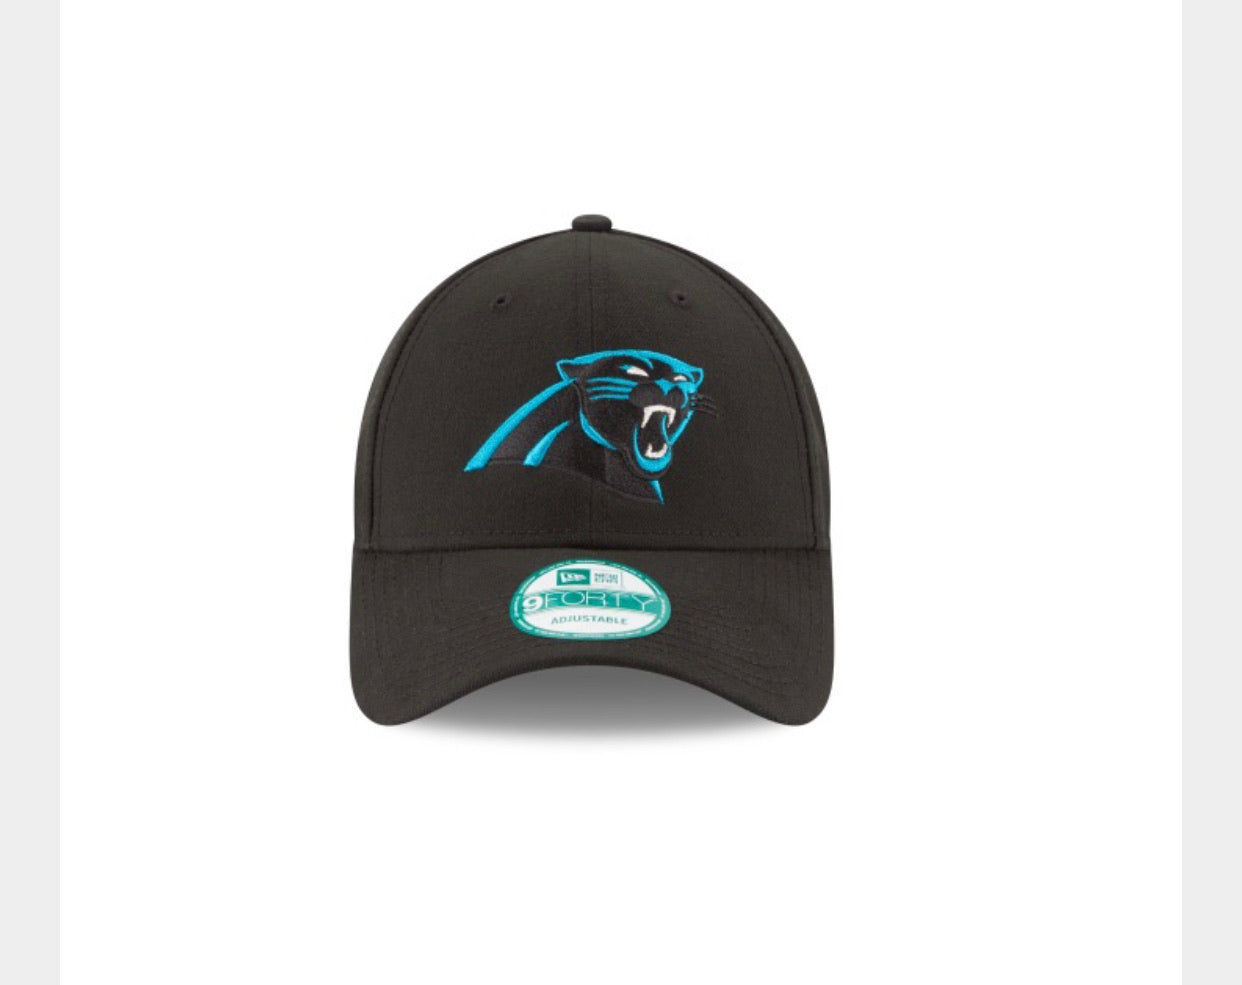 Carolina Panthers New Era 3930 Graphite On Field Training Hat - AtlanticCoastSports